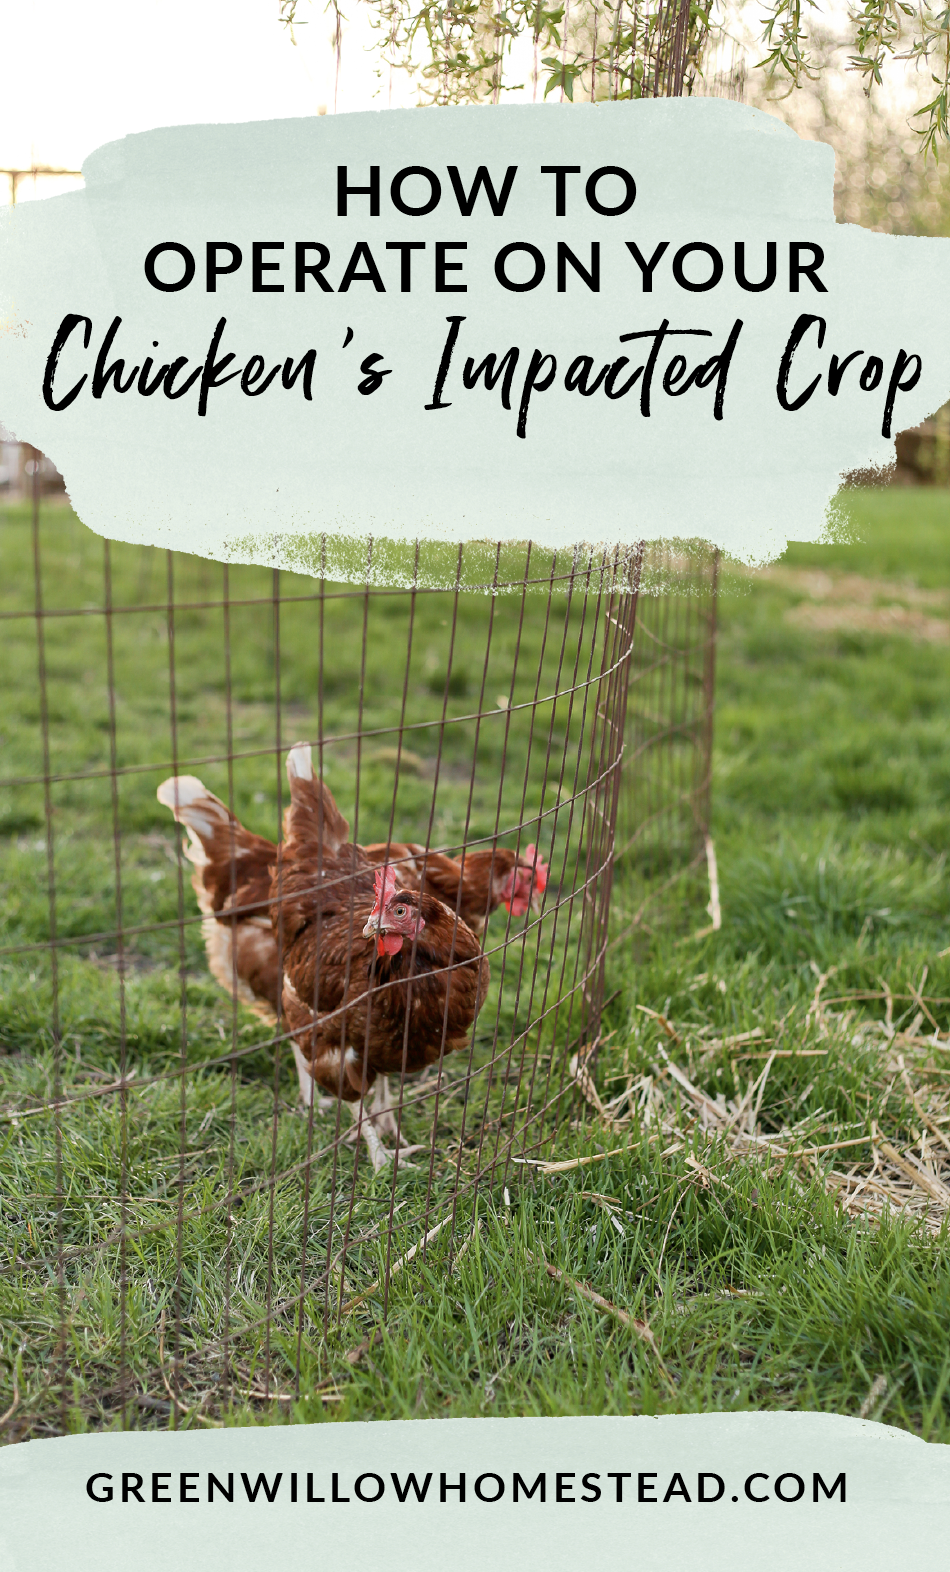 How to operate on your chicken with an impacted crop, spot the symptoms of impacted crop